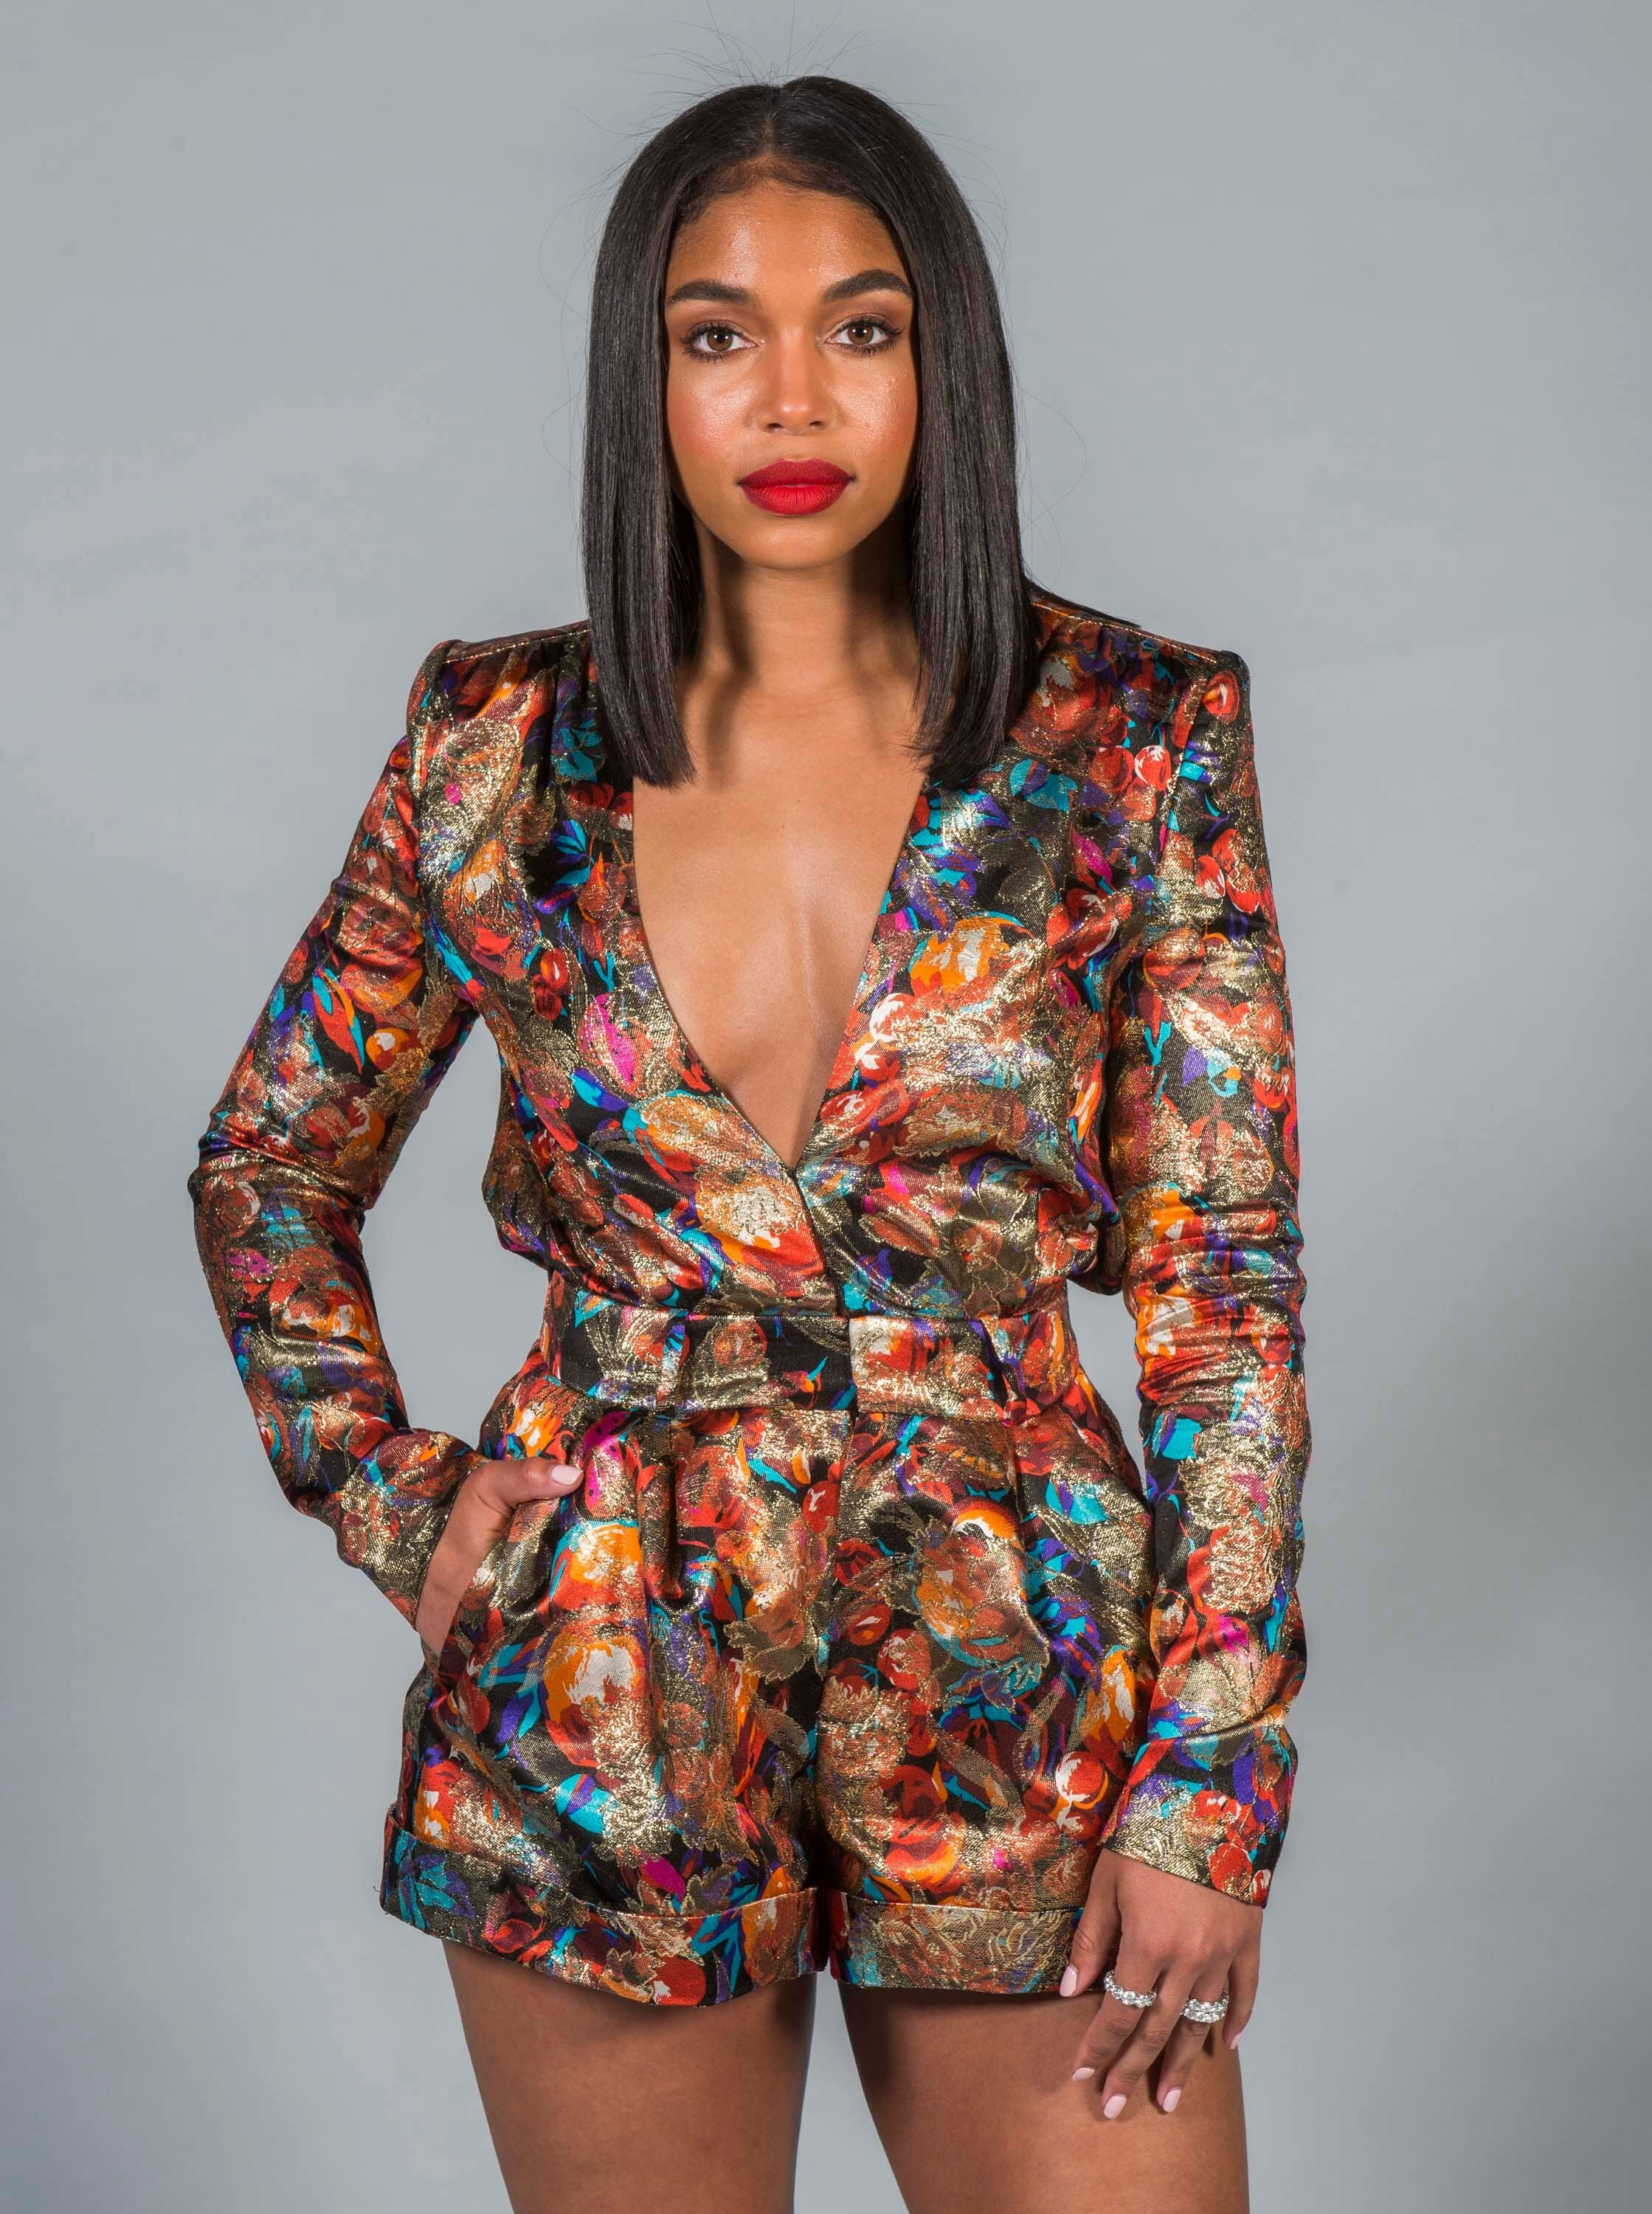 Lori Harvey, daughter of celebrity show host Steve Harvey/ Source: Getty Images